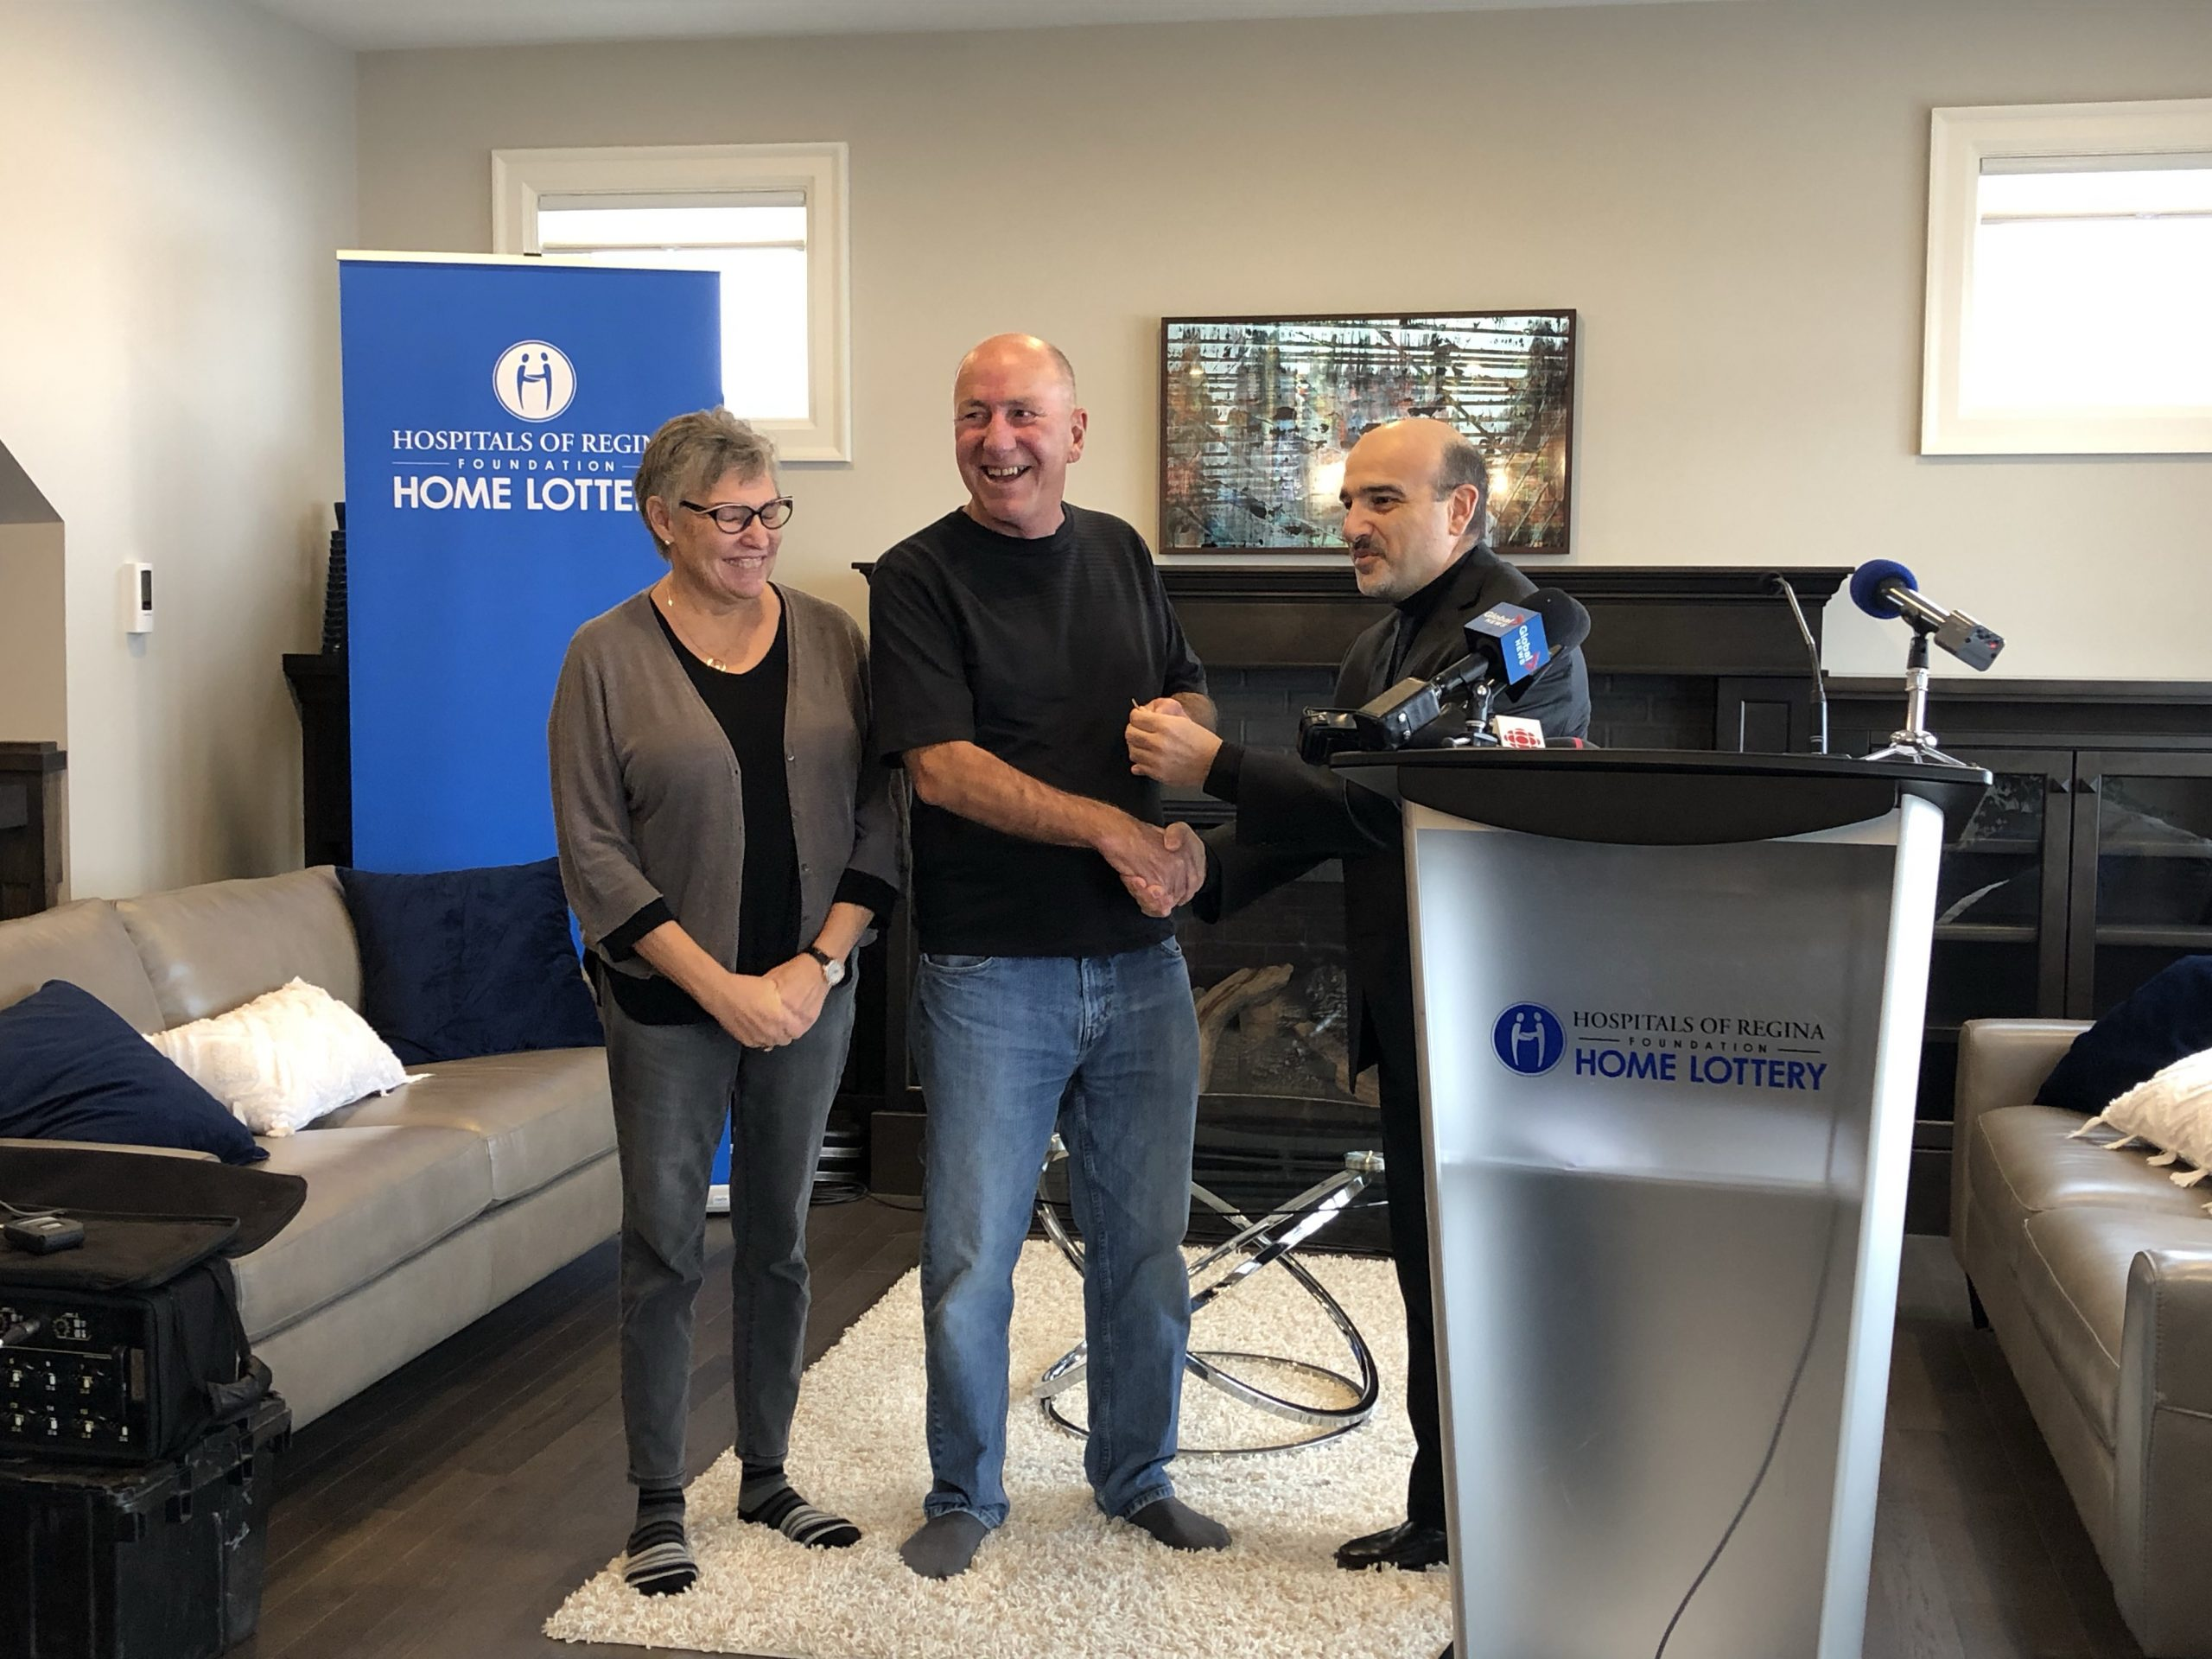 Home lottery winners say donations hit close to home this year